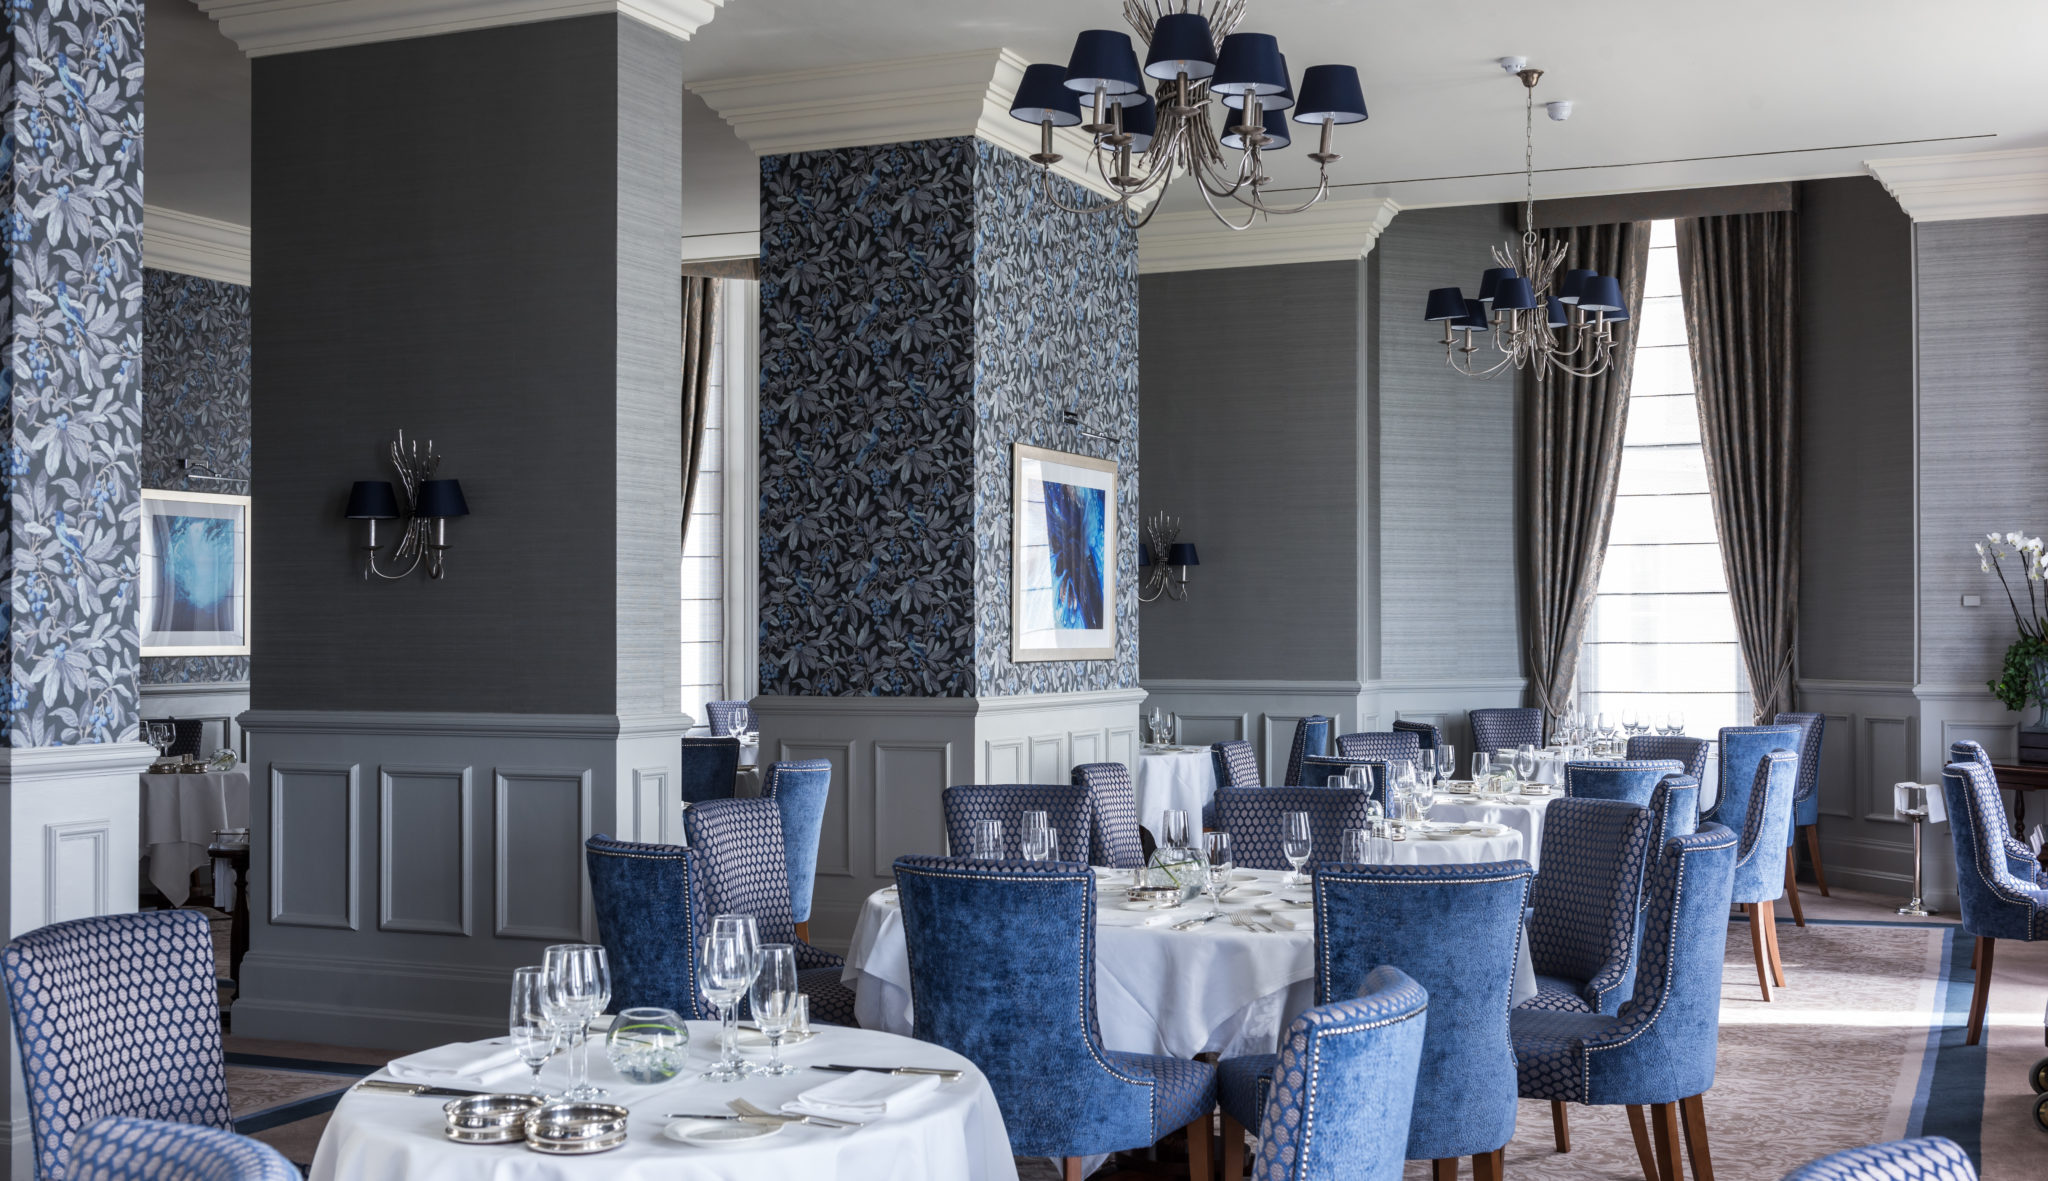 The Grand Hotel, Eastbourne, Elite Hotels, The Mirabelle, restaurant, staff, interiors,   2018